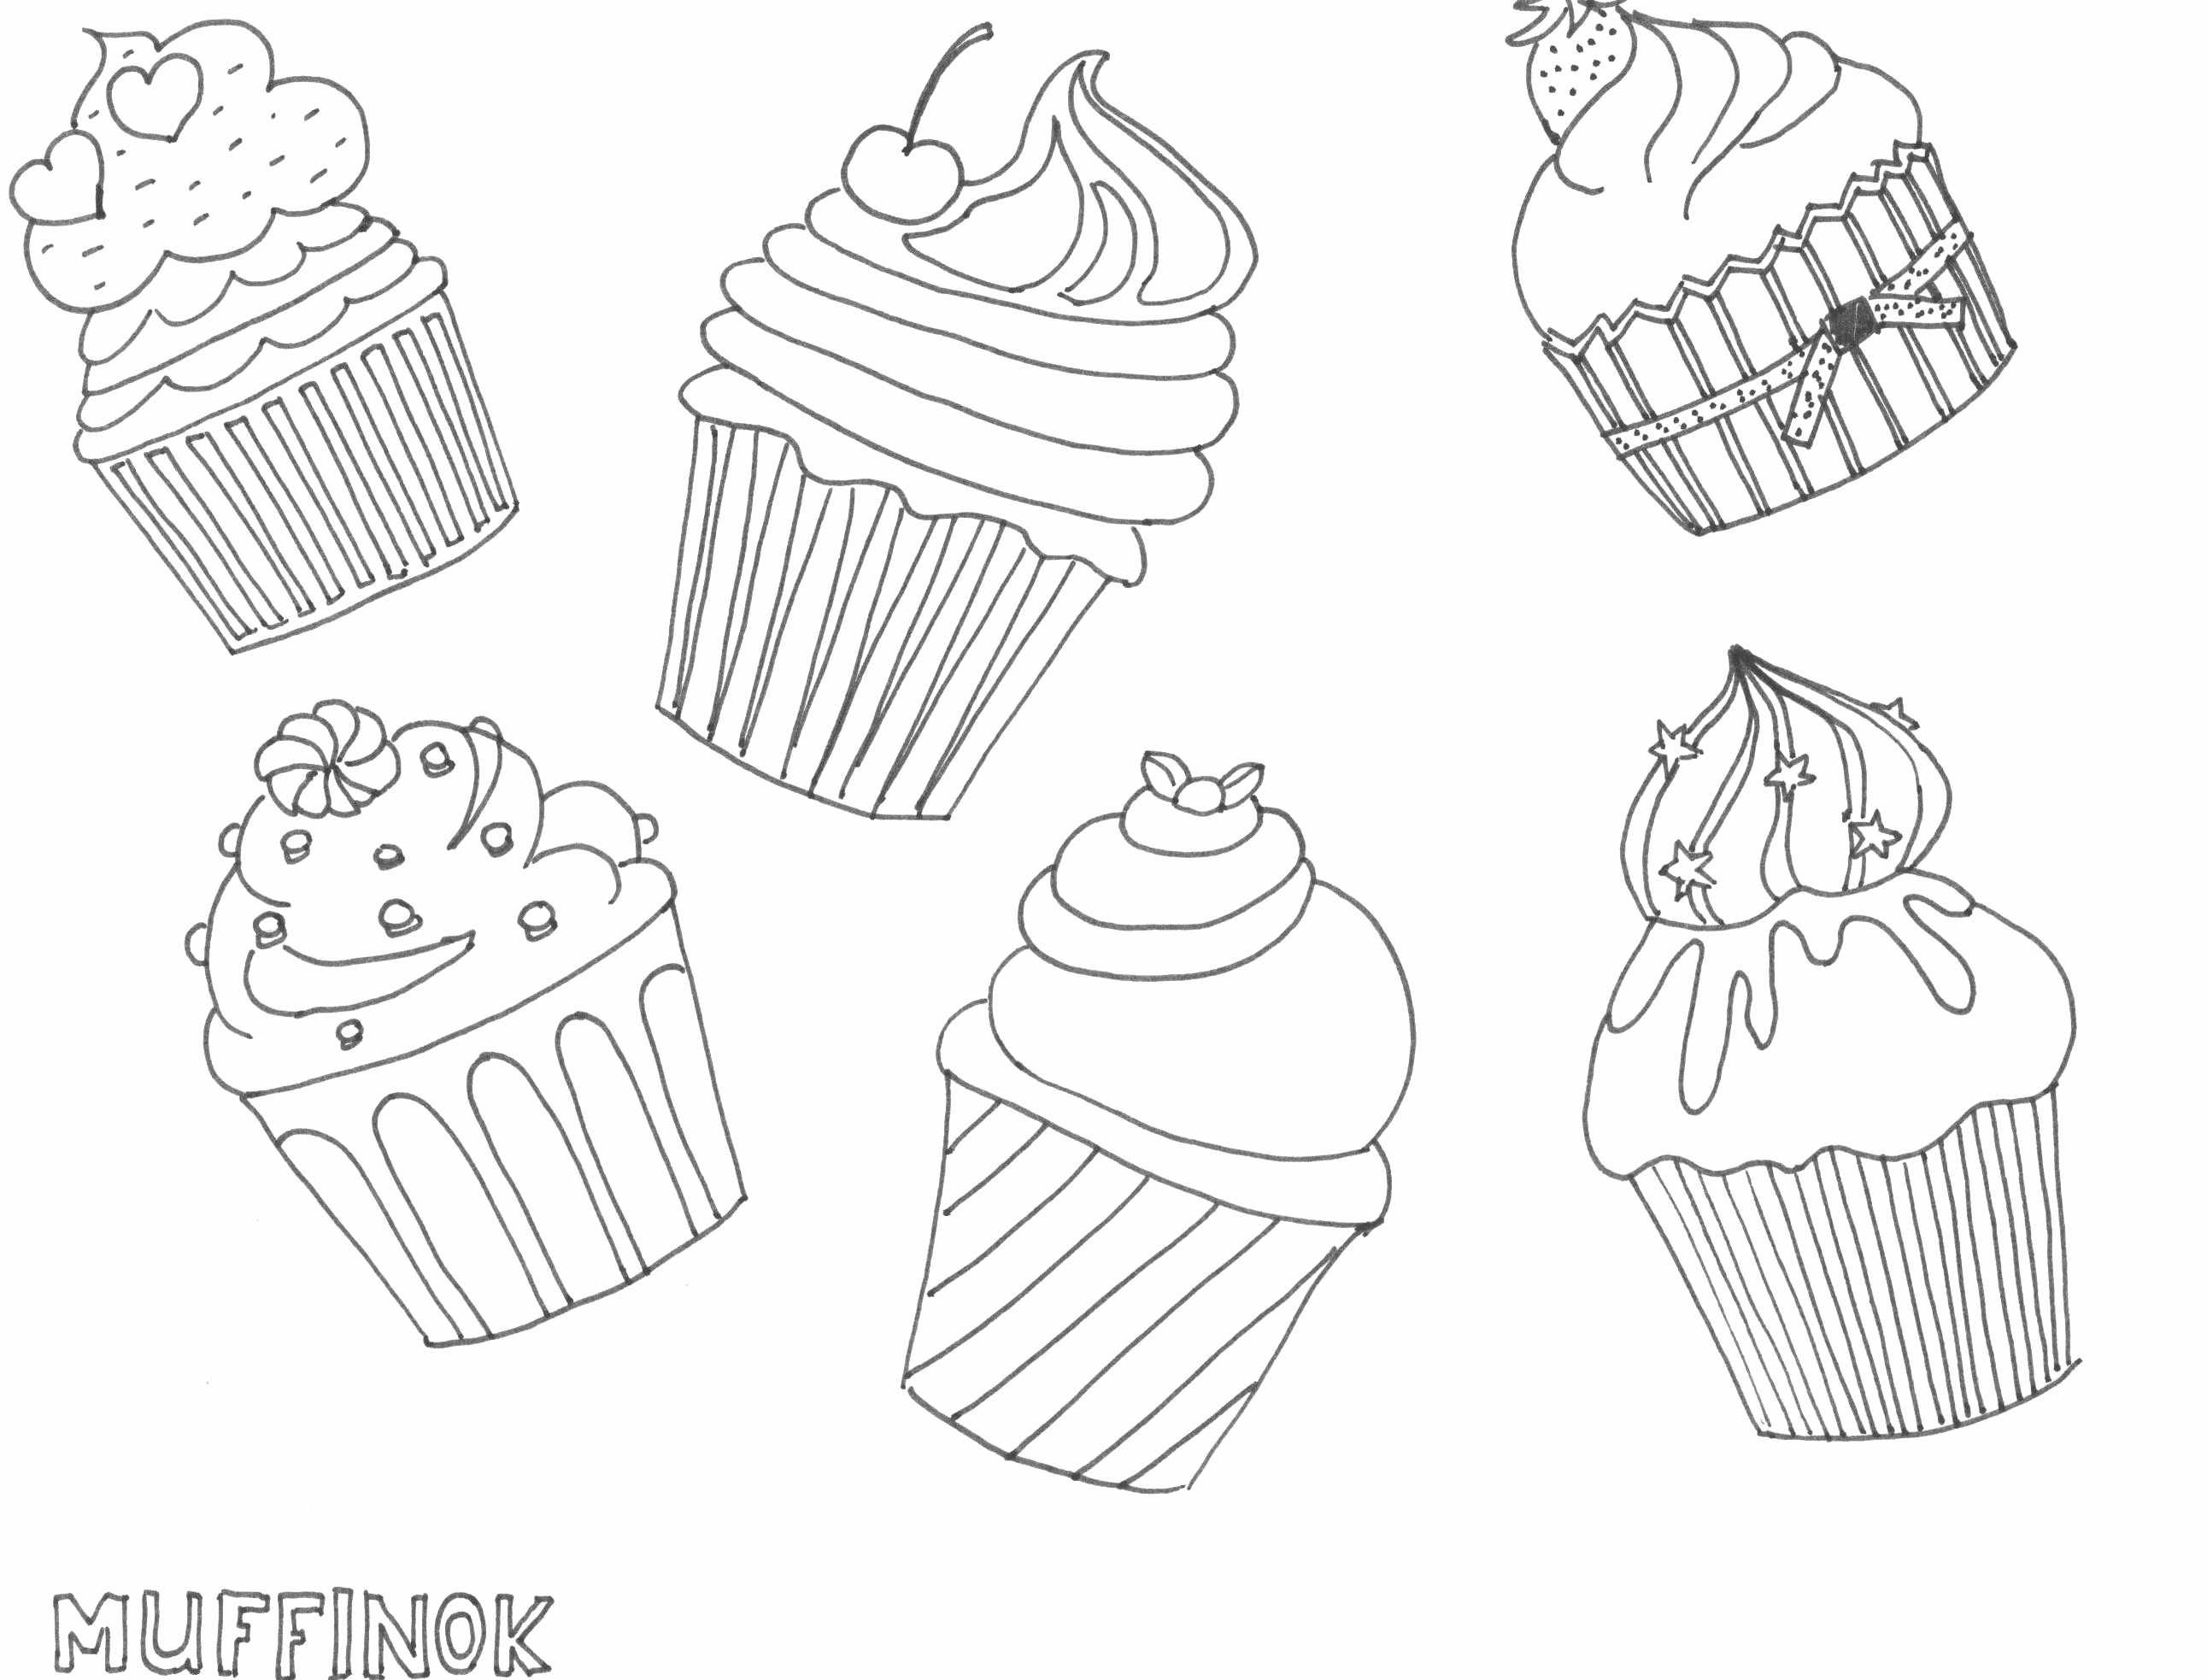 Muffin Rajz Drawing Muffin Coloring Page Szinezo With Images